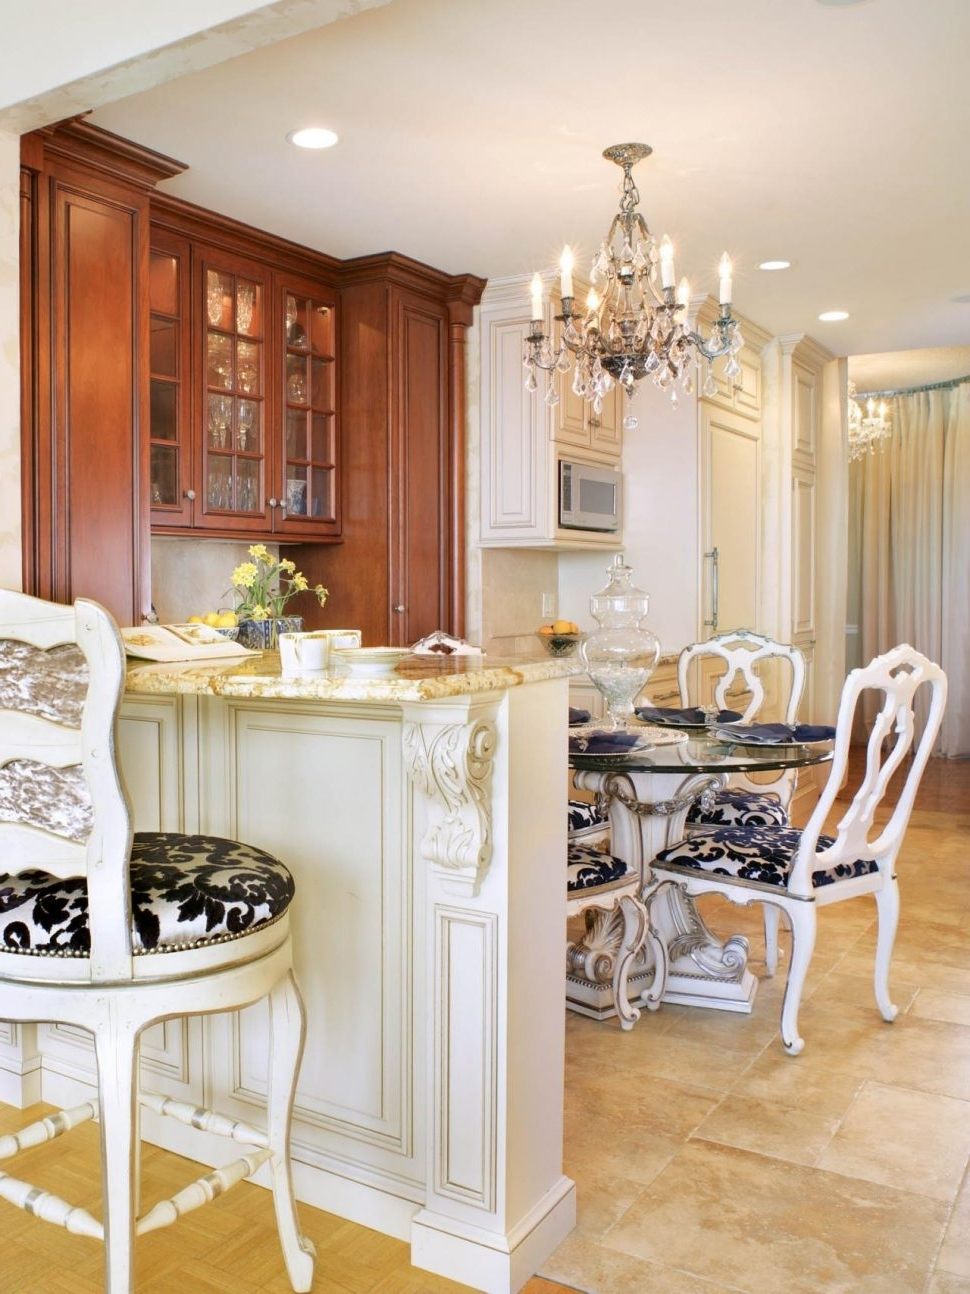 Latest French Country Chandeliers For Kitchen With Chandeliers Design : Fabulous Charming Kitchen Chandelier (View 12 of 15)